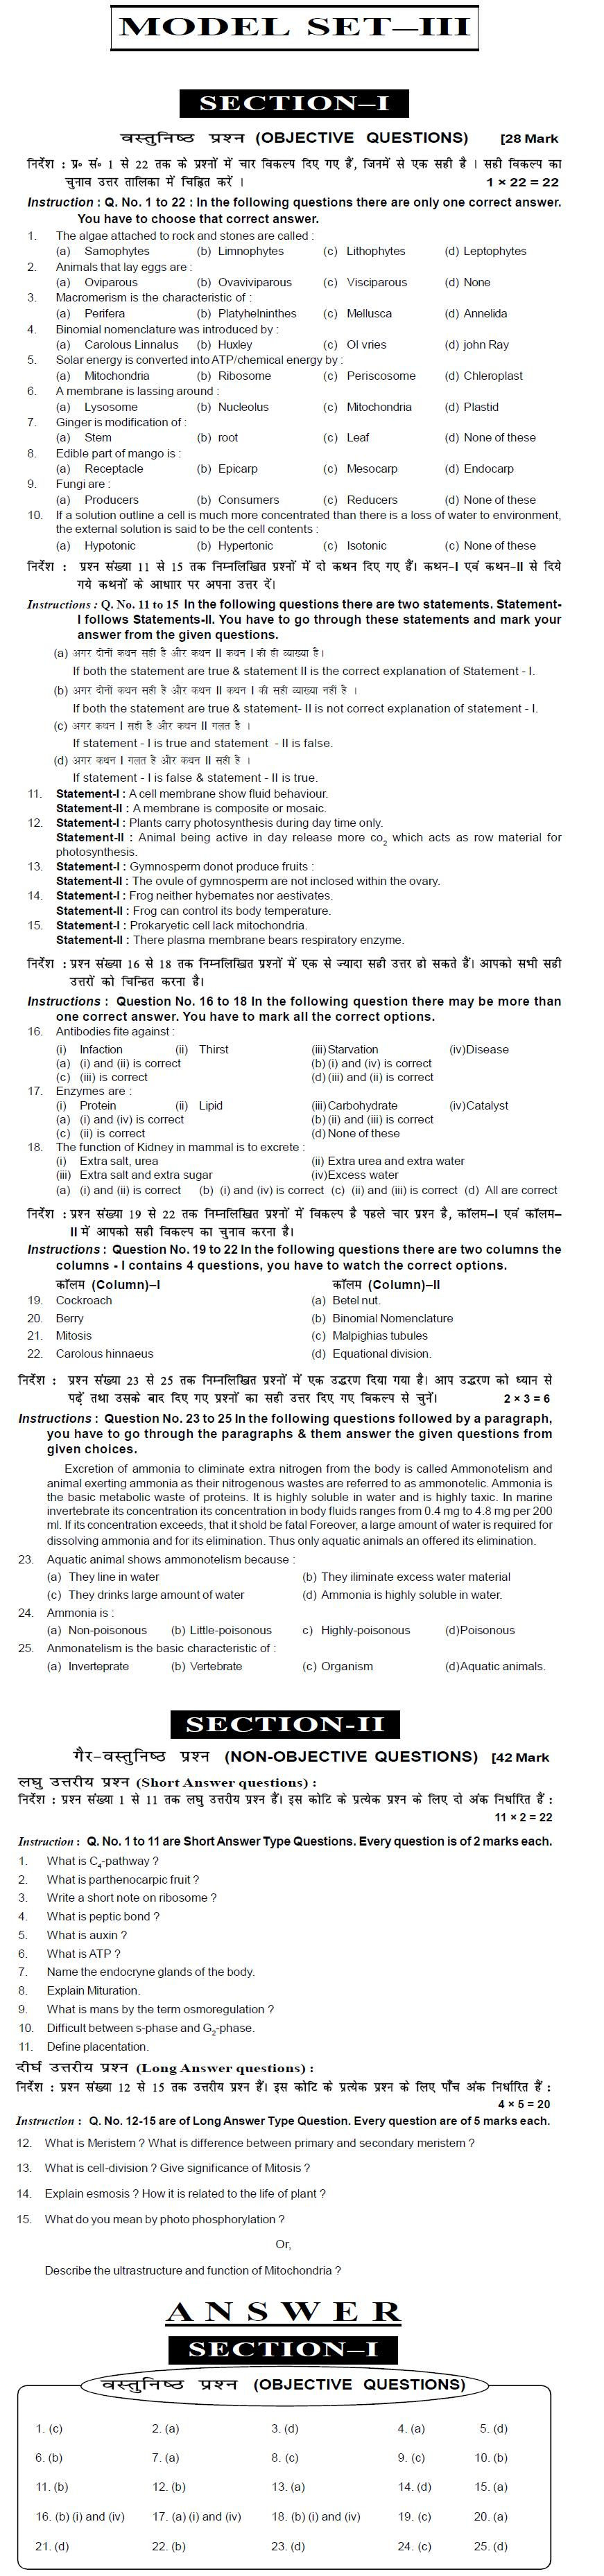 Bihar Board Class XI Science Model Question Papers - Biology